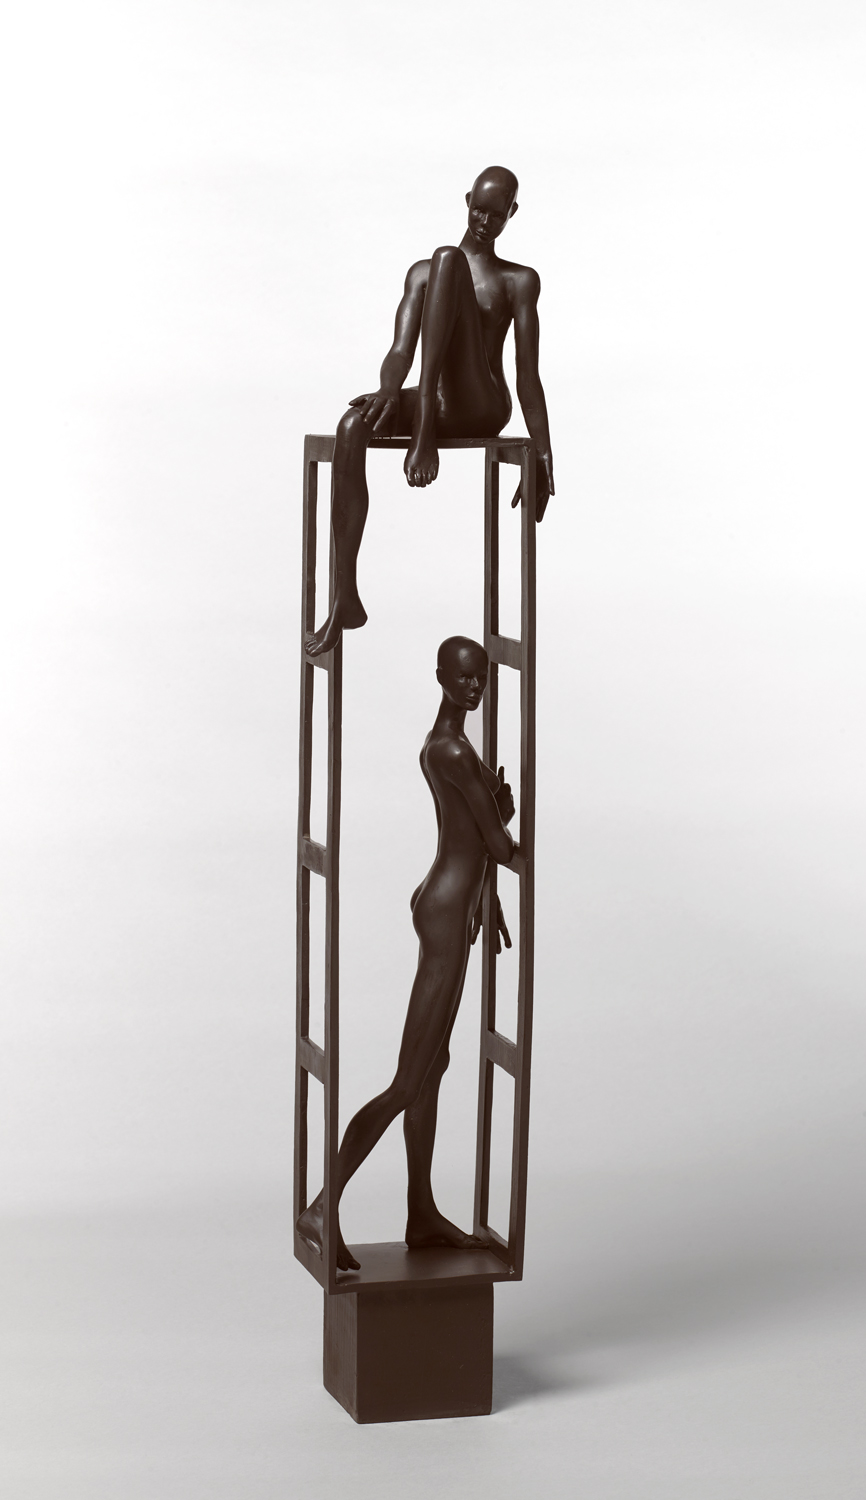 Estructura 1 , 2019  bronze 29 3/4 x 5 1/2 x 5 inches; 75.6 x 14 x 12.7 centimeters  $18,000